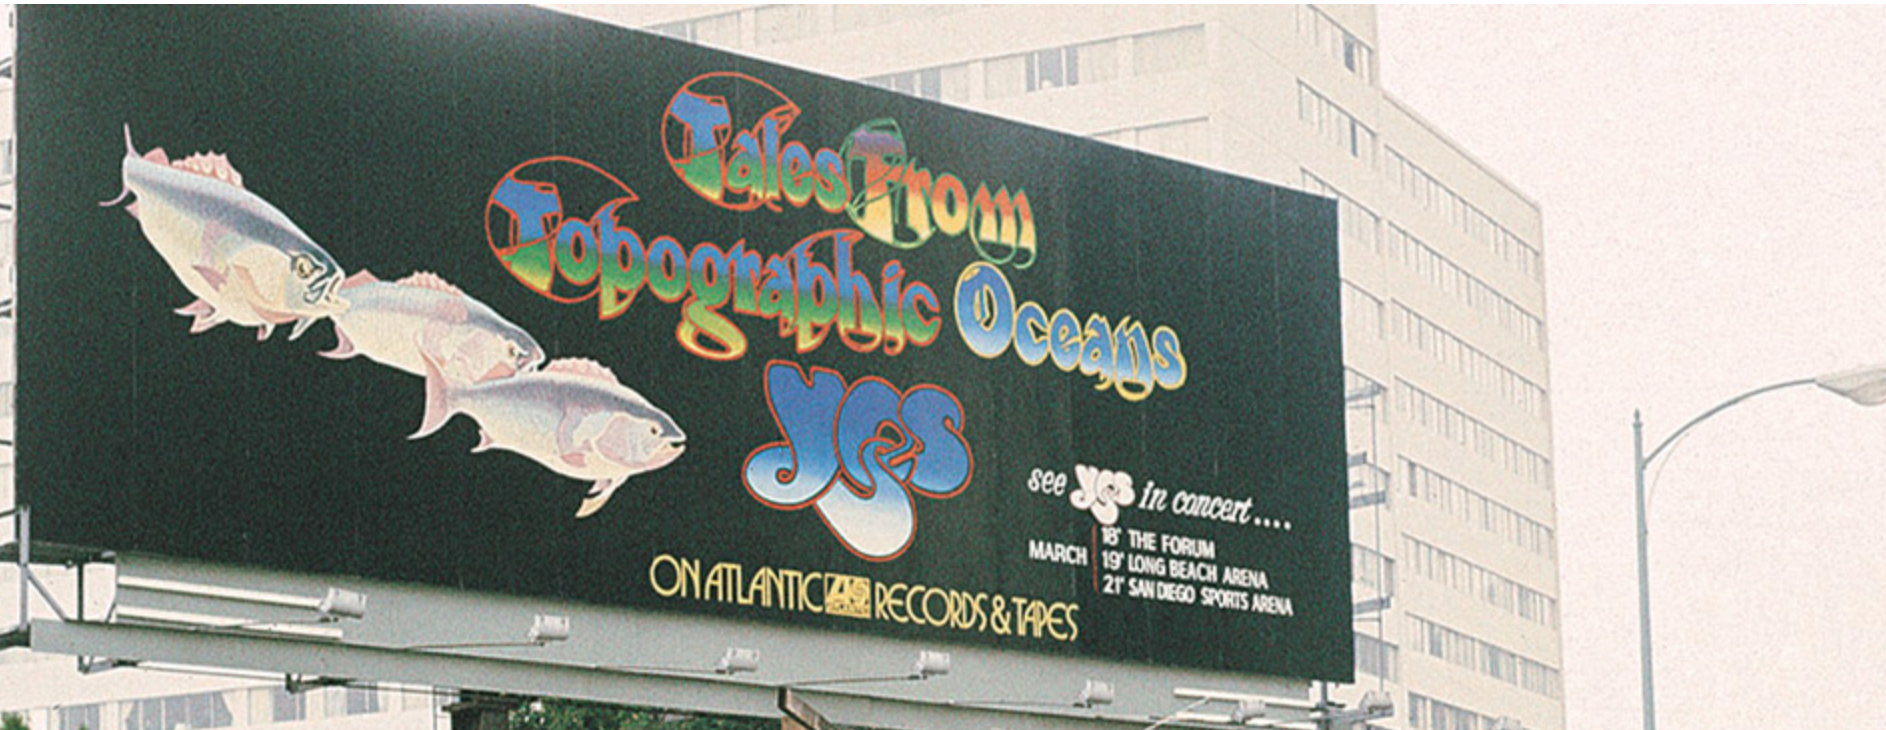 Back in the day, record labels would back their biggest stars with billboards on Los Angeles' Sunset Strip